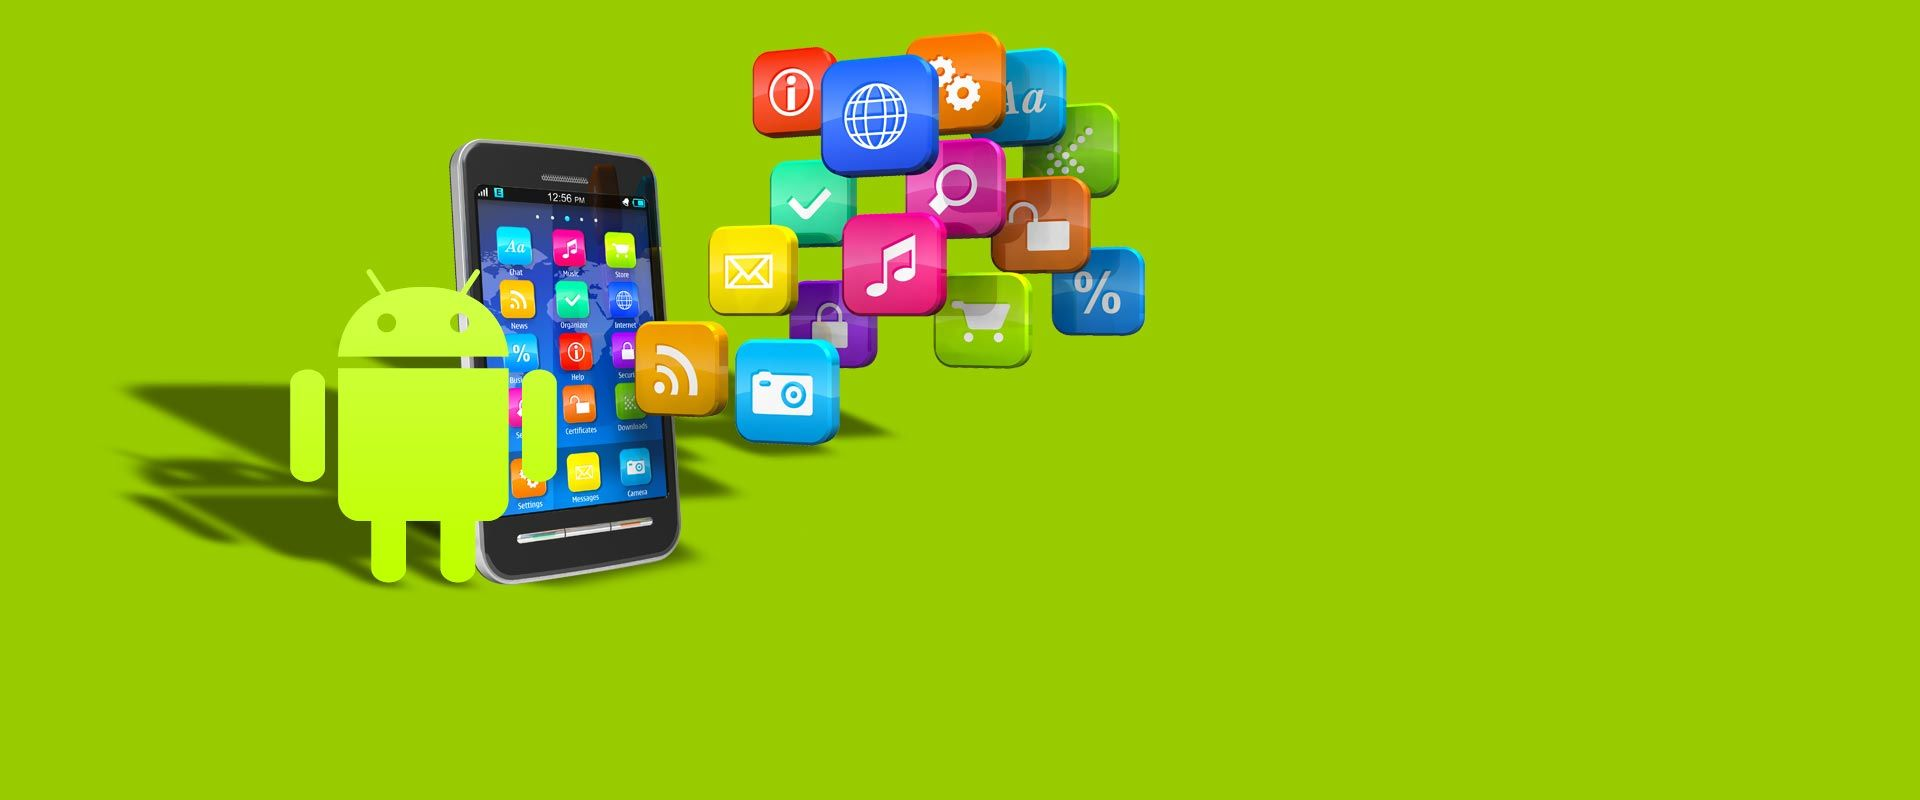 Android Application Development Company in Houston | Austin | Dallas | San Antonio | Atlanta